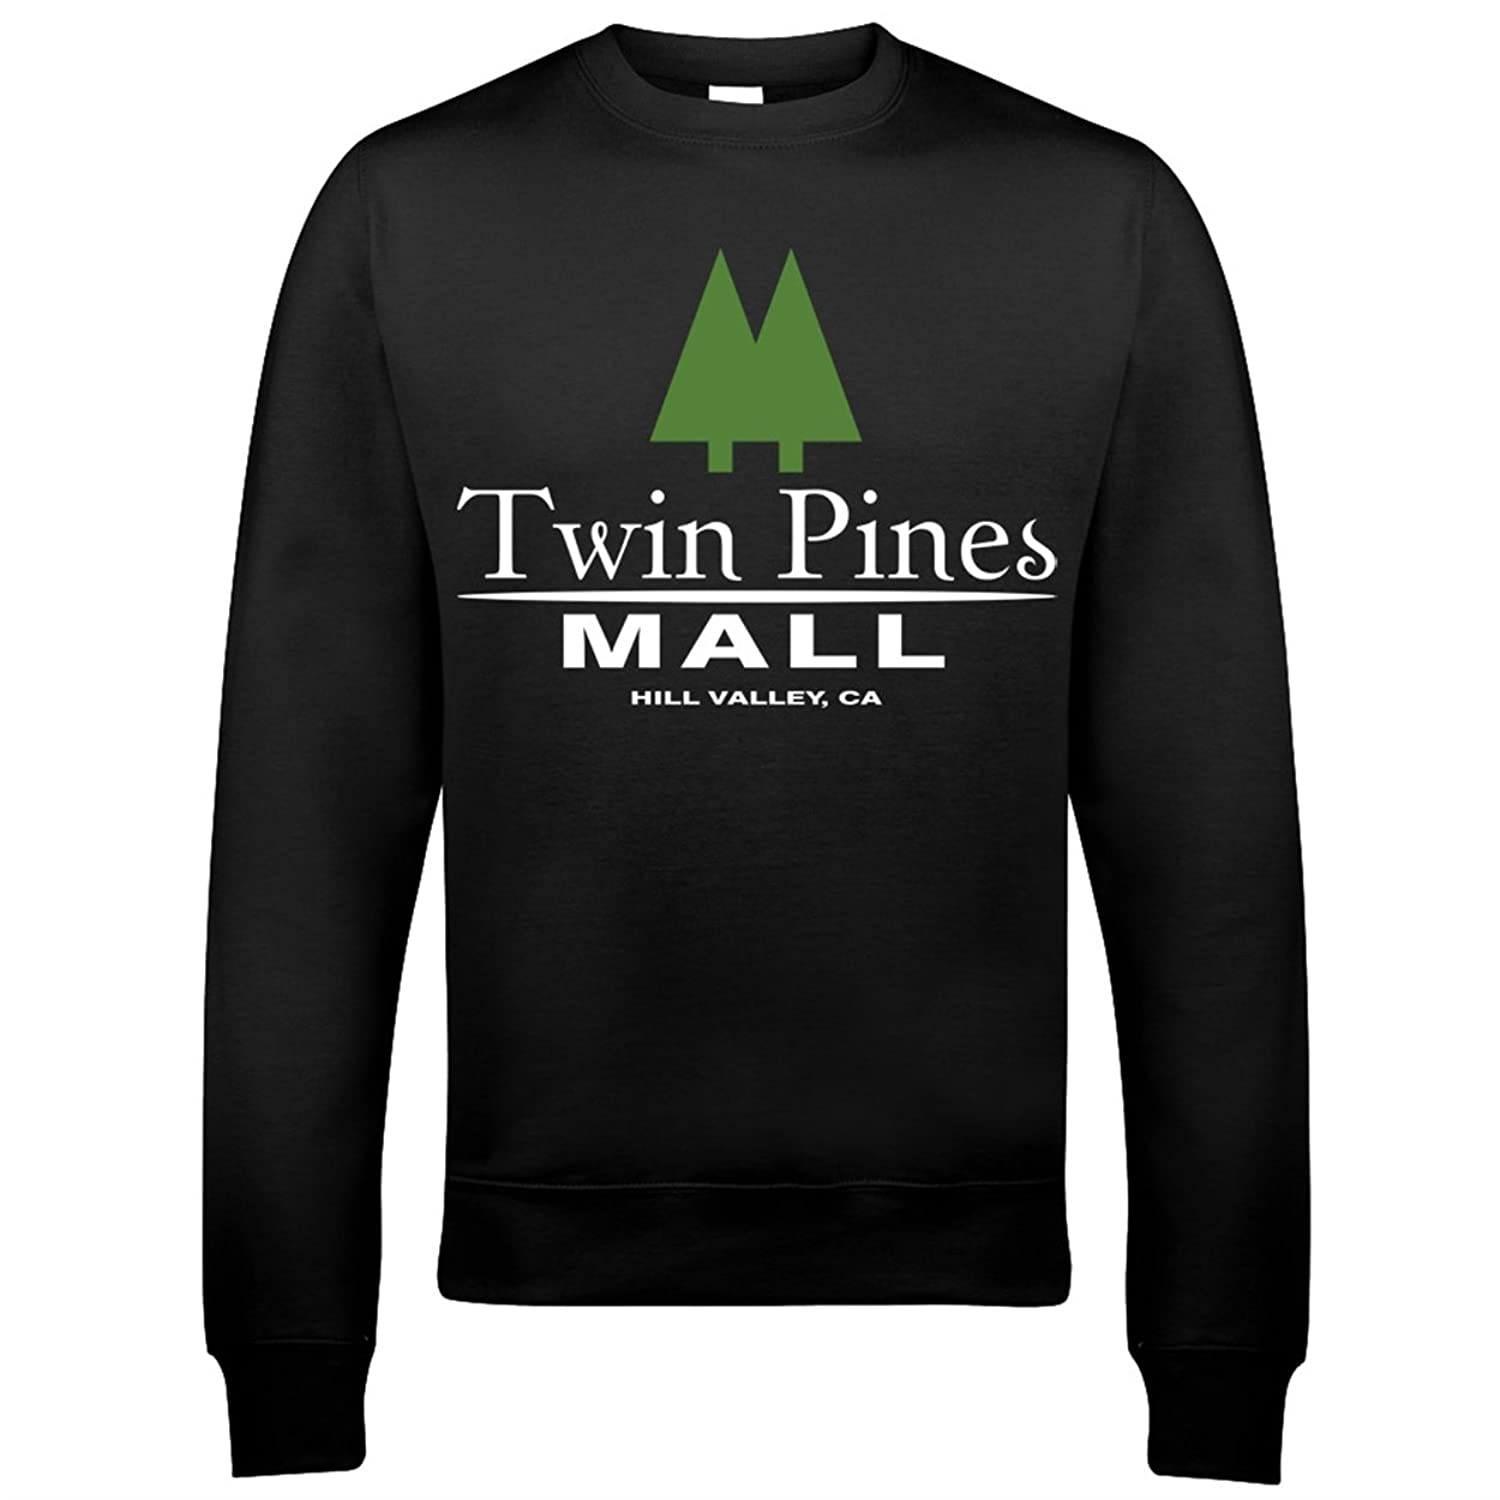 9014 Twin Pines Mall Mens Sweatshirt Back To The Future BTTF Hoverboard 88mph Hill Valley Biff Co Emmett Brown